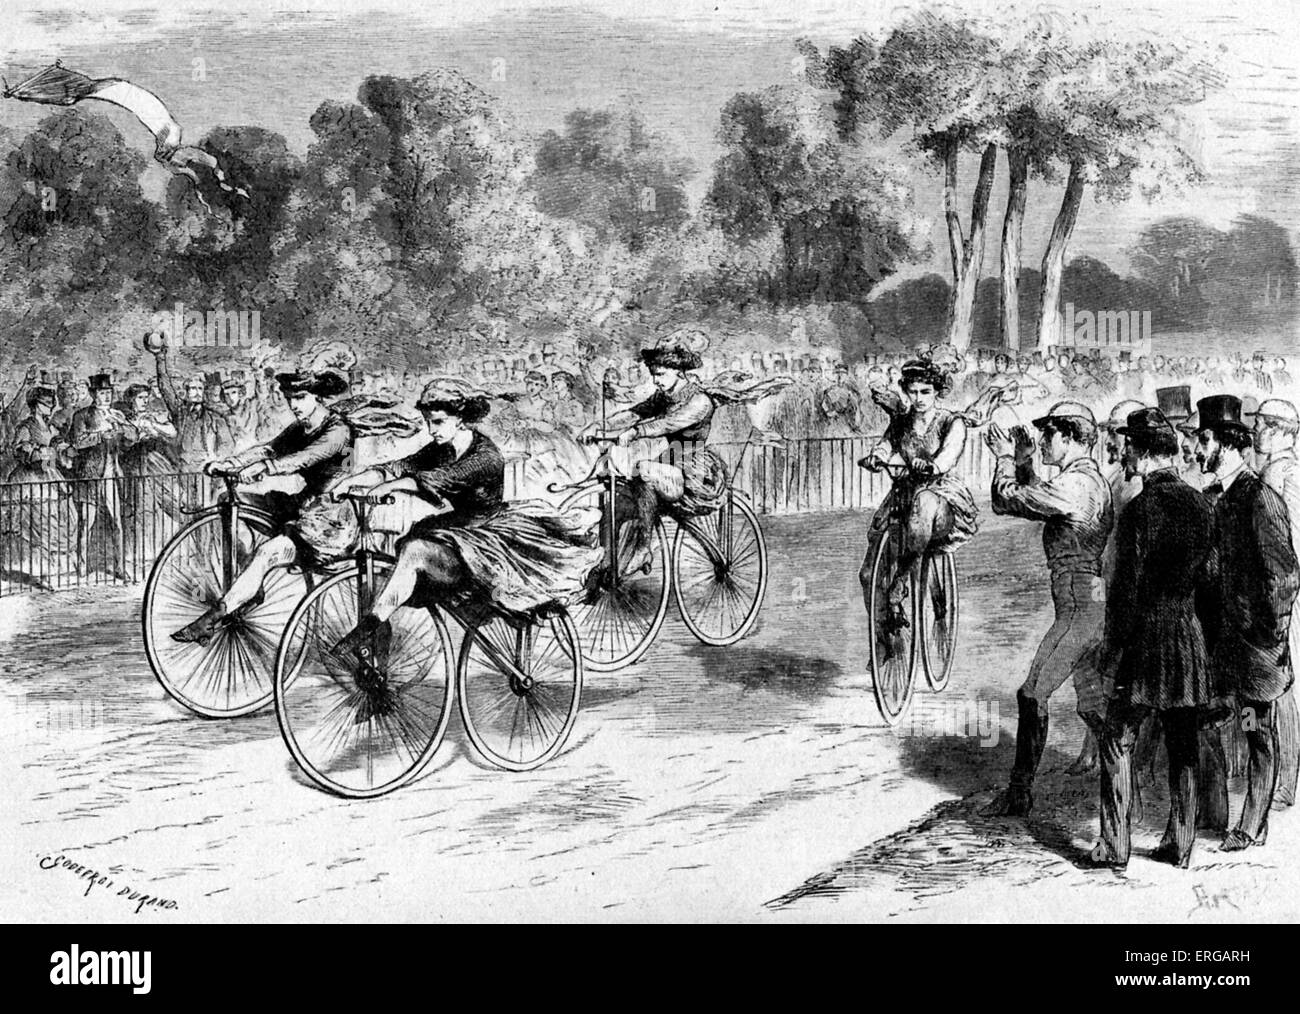 First bicycle race for women in France took place in a park in Bordeaux, 1 November 1868, with only four participants. - Stock Image